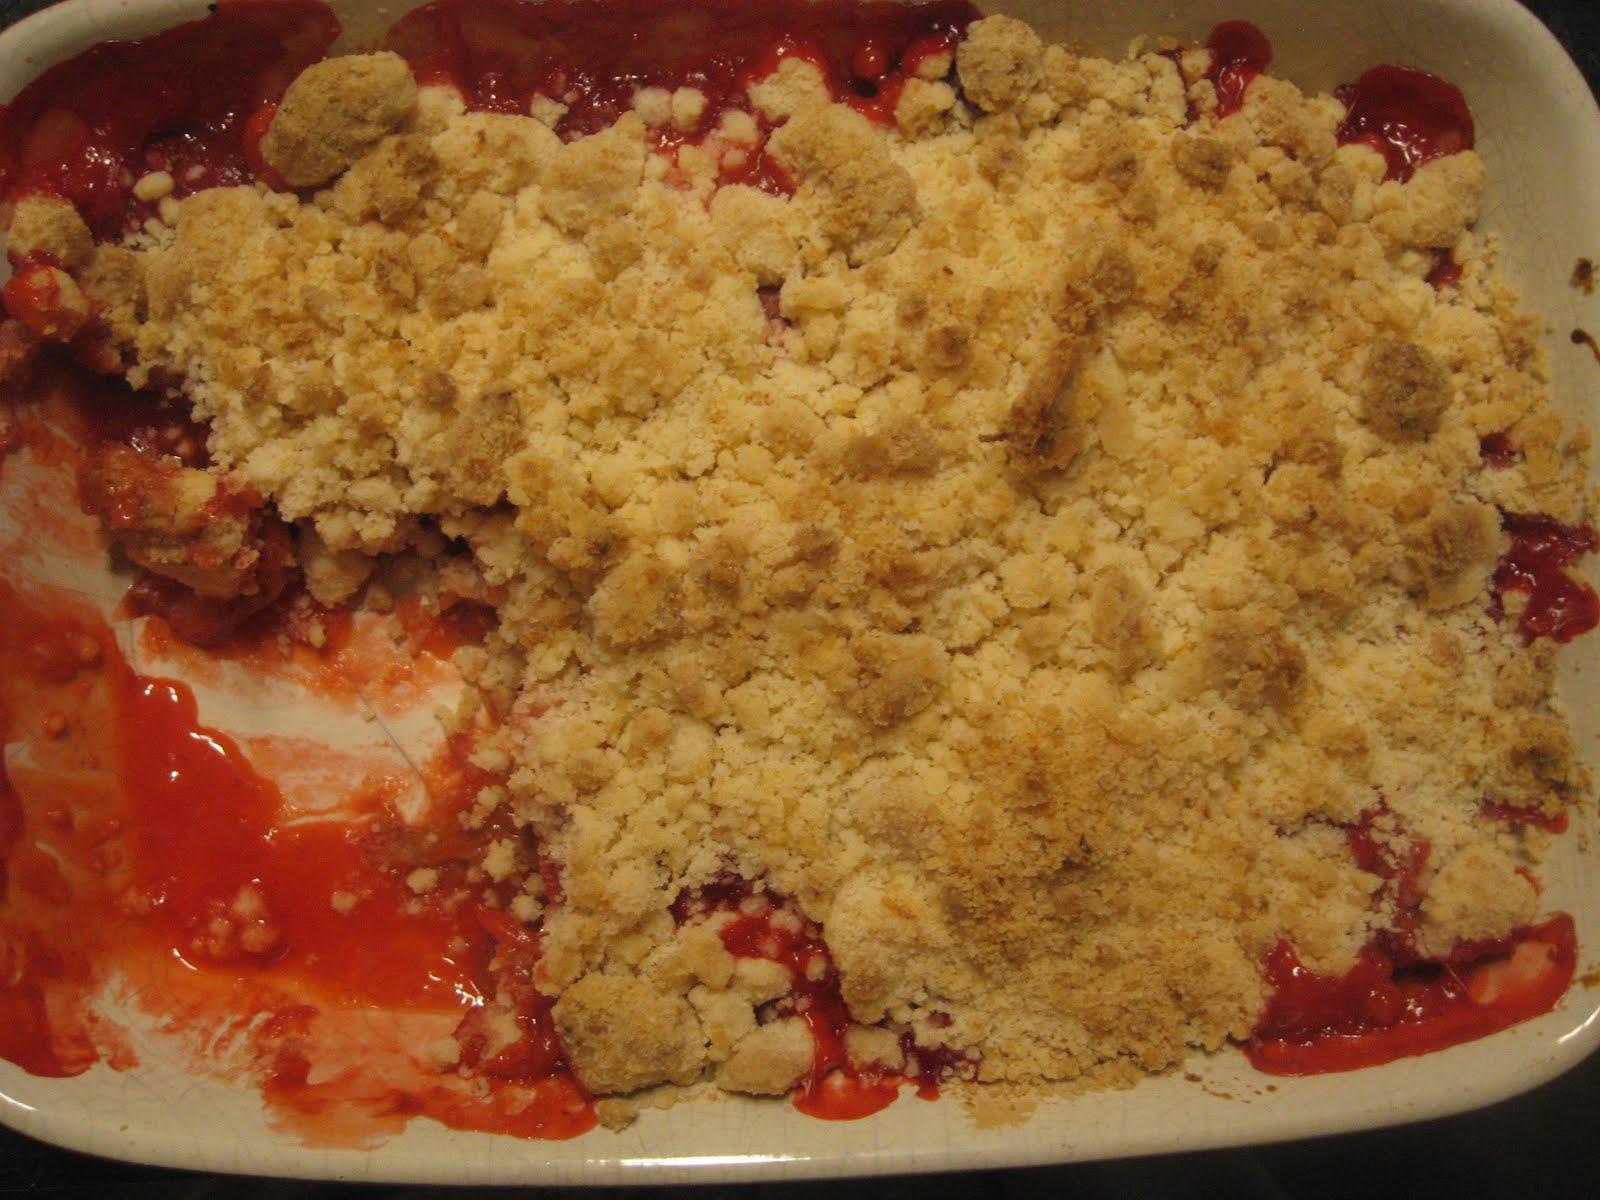 Domestic Bliss: Strawberry Rhubarb Crumble